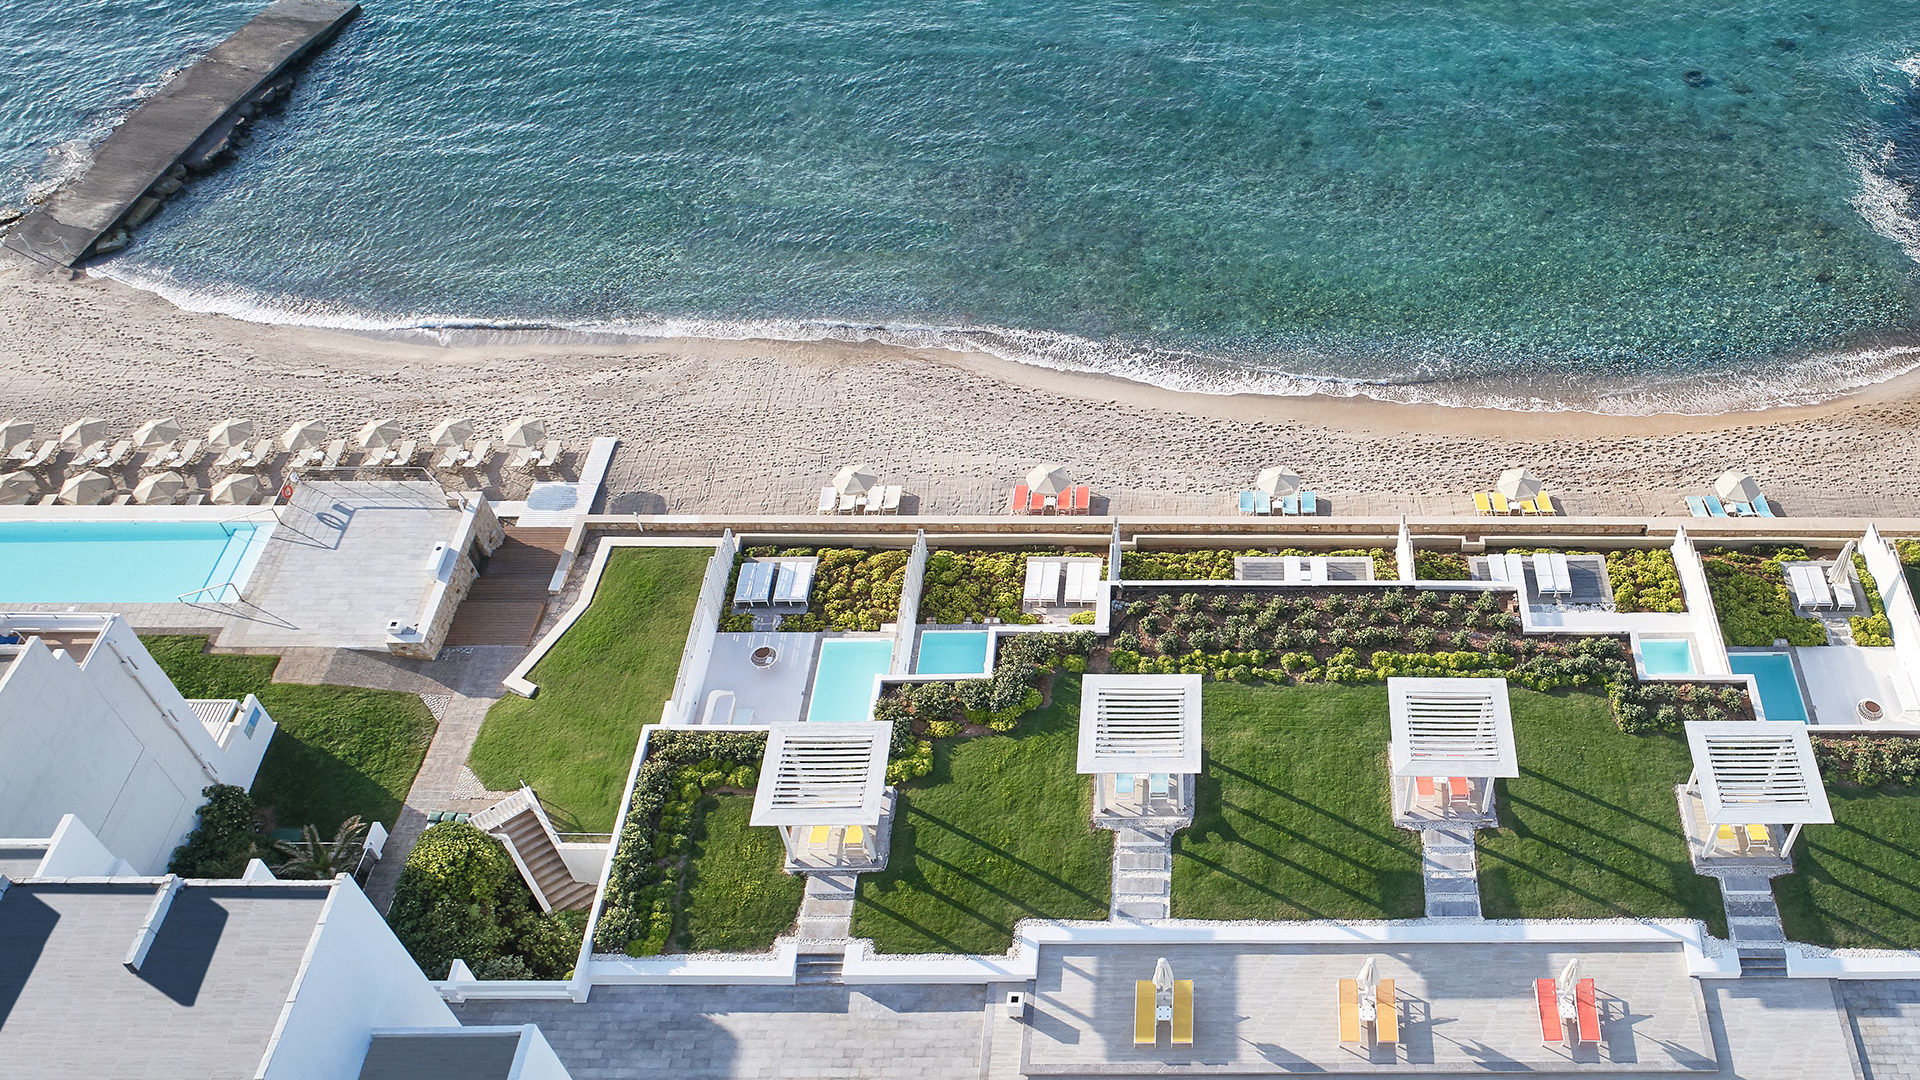 Kreta_White_Palace-15-Luxme-Yali-Seafront-Suite-with-Sharing-Pool_72dpi